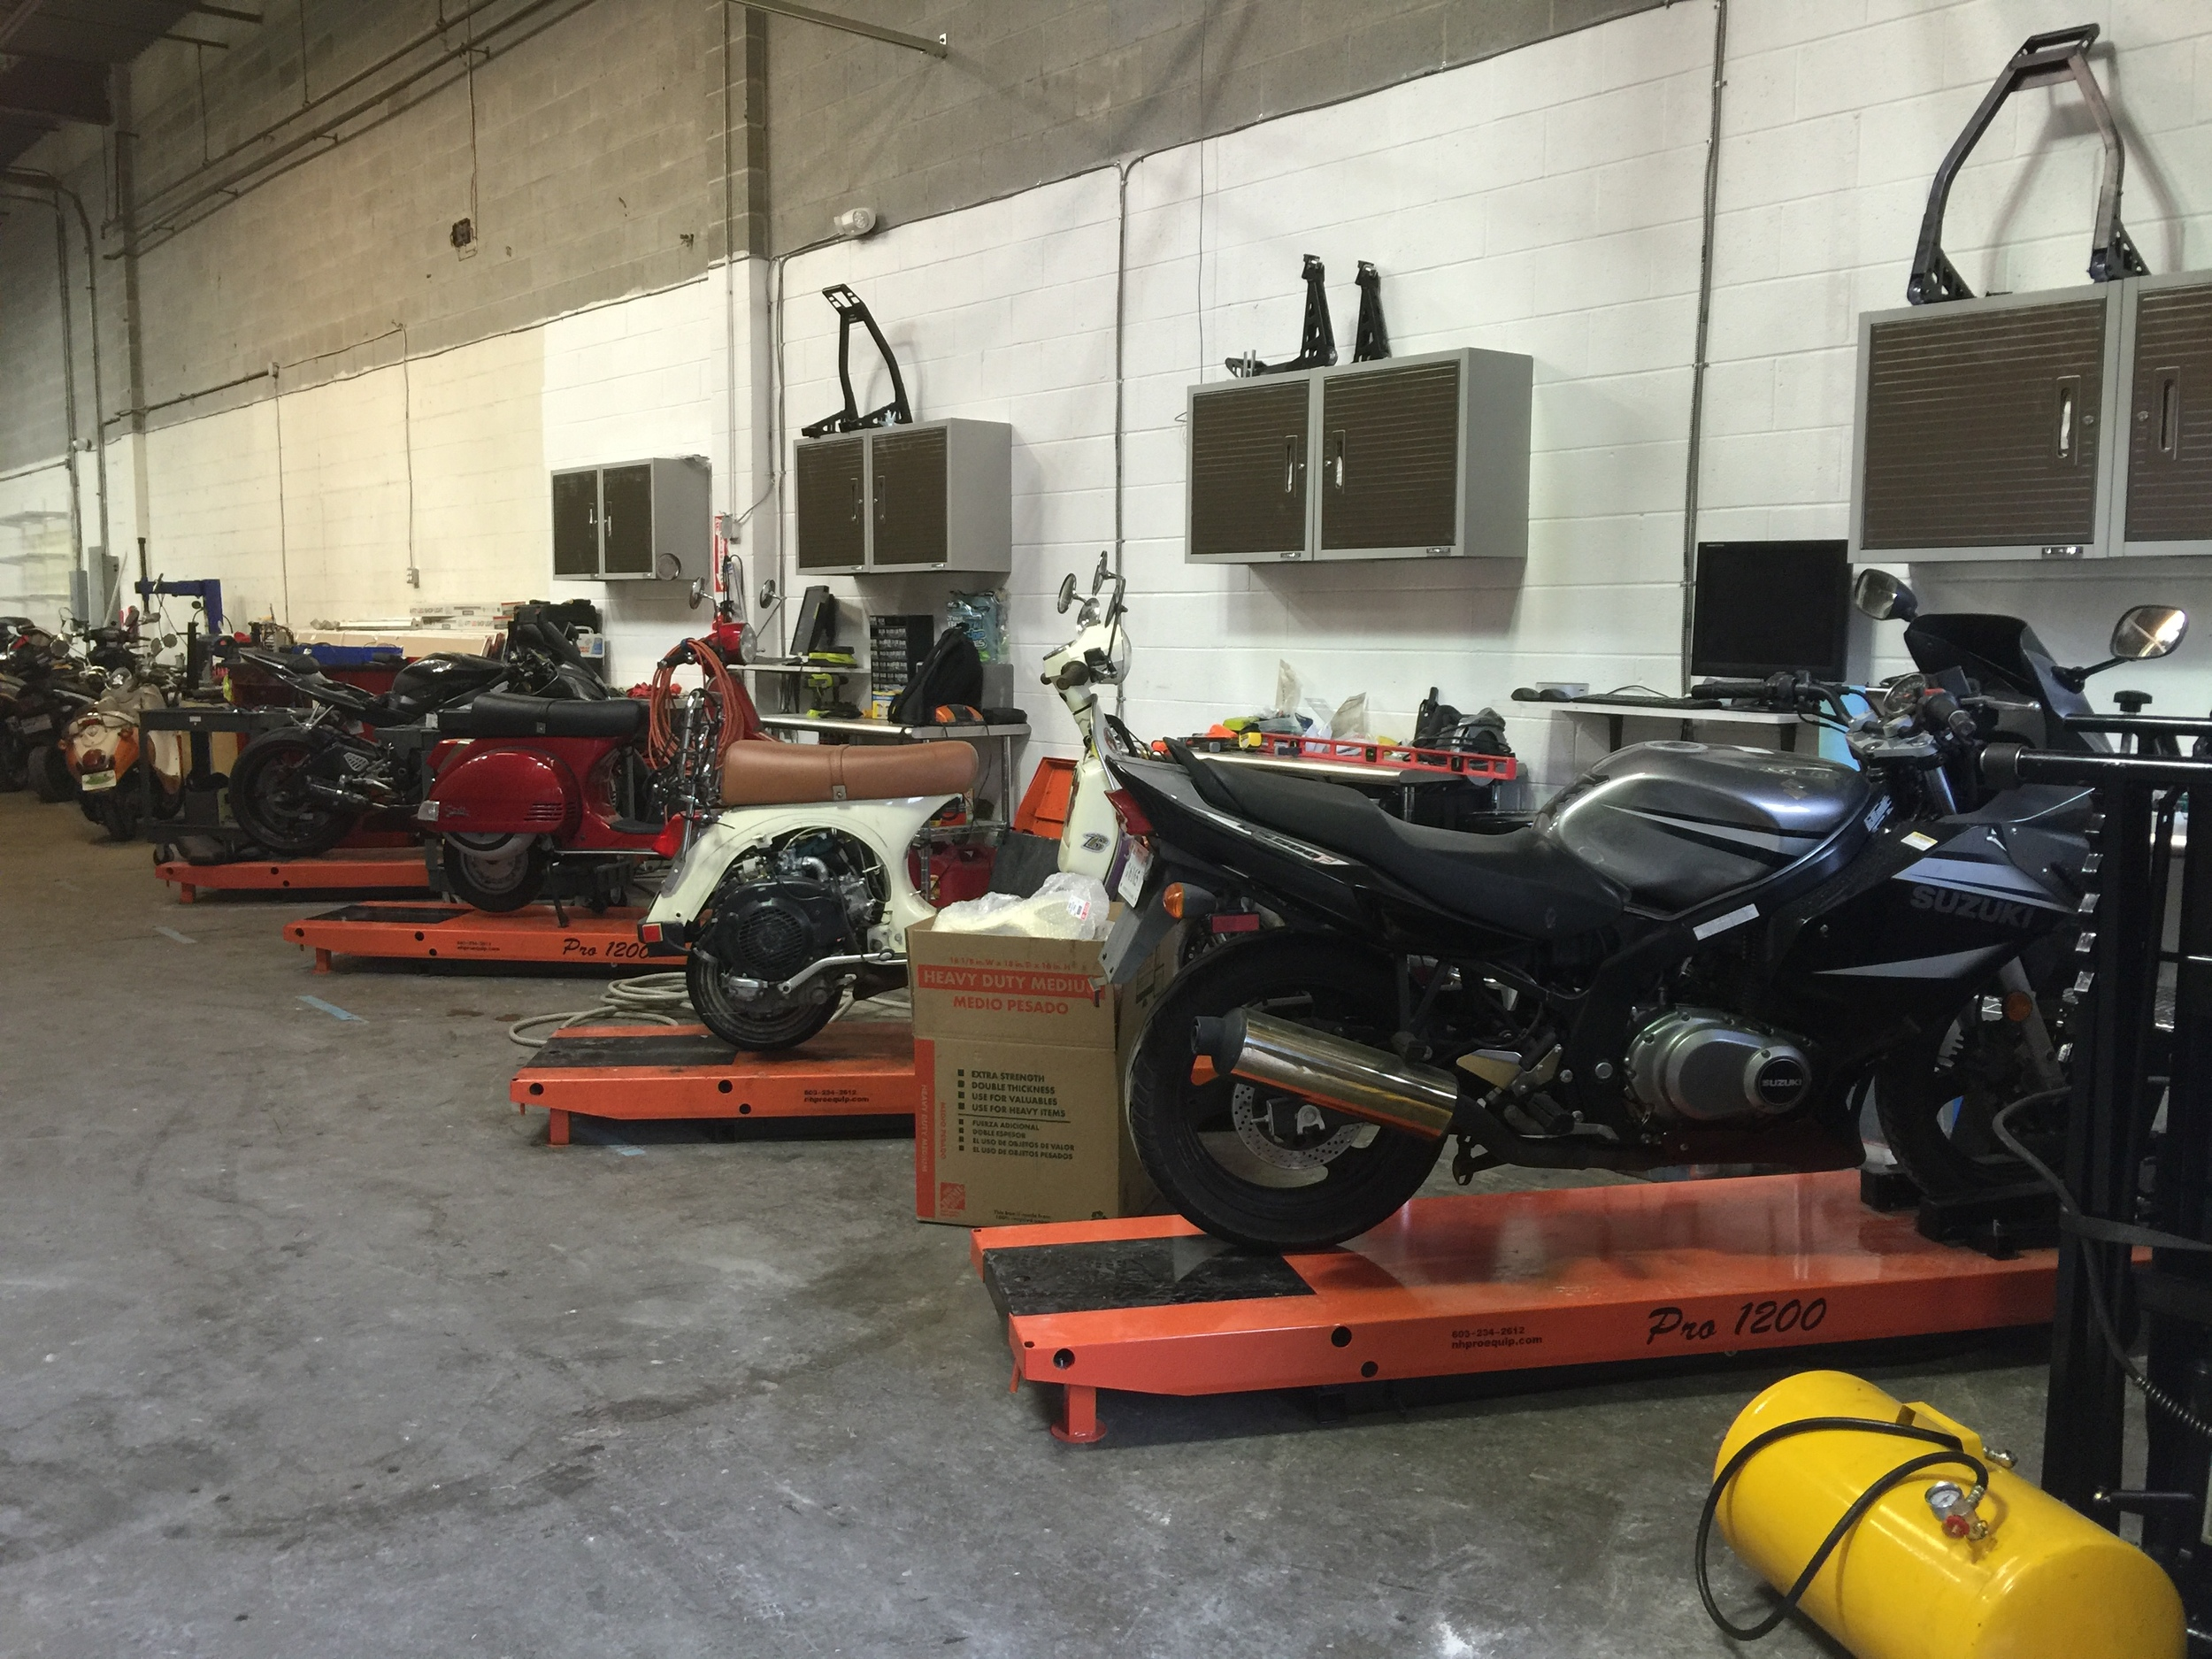 #Postedup customers' bikes in service!